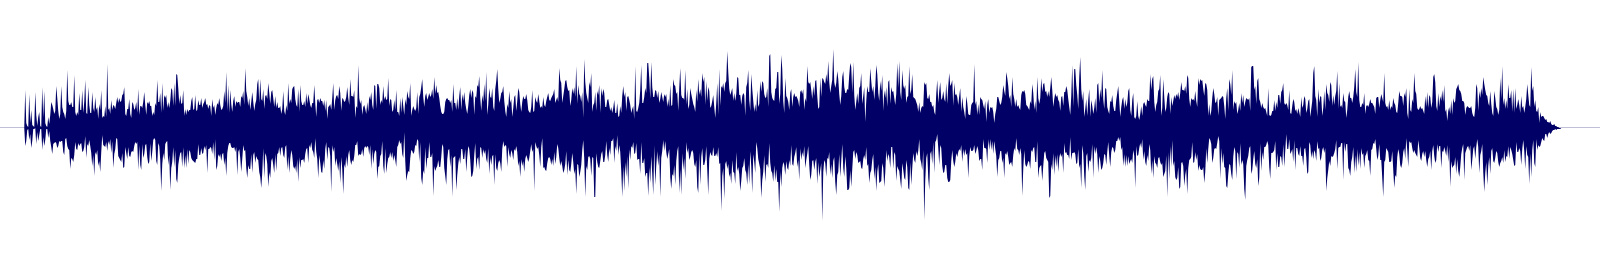 waveform of track #99670